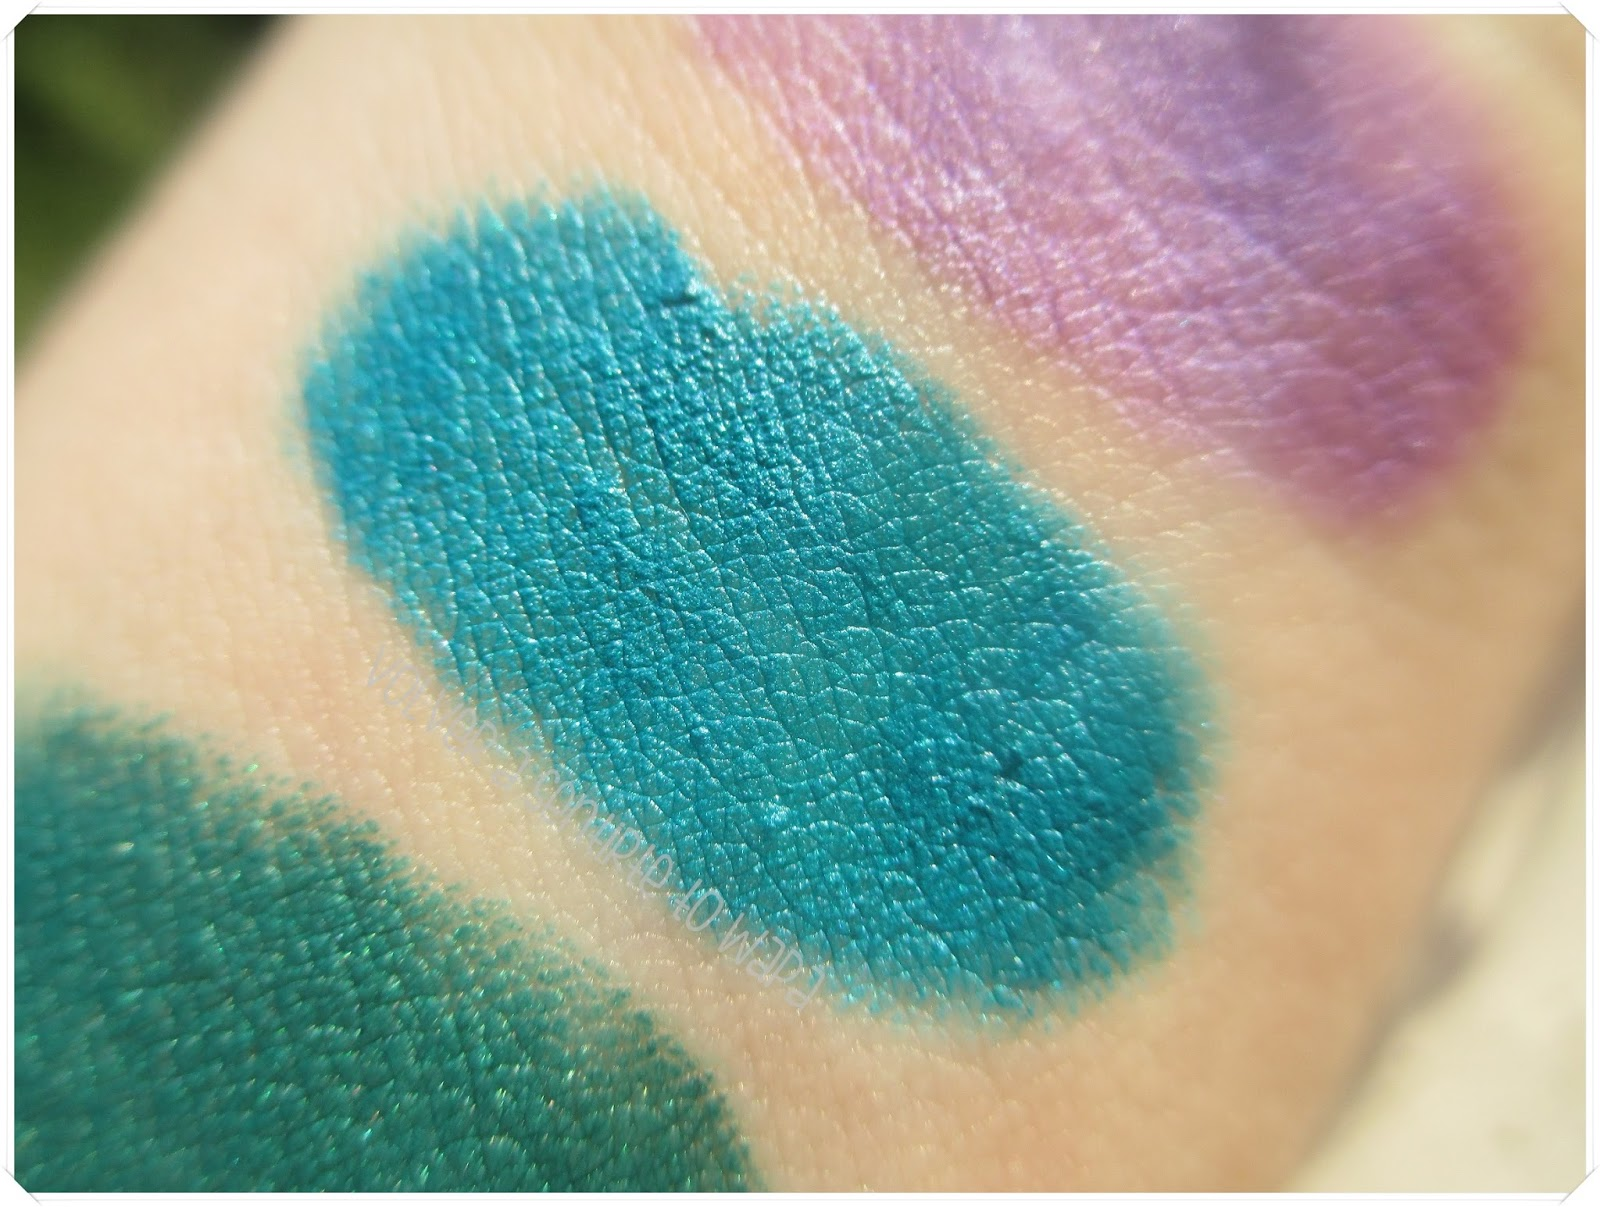 LONG LASTING de KIKO {Review & Swatches} - 11 Teal